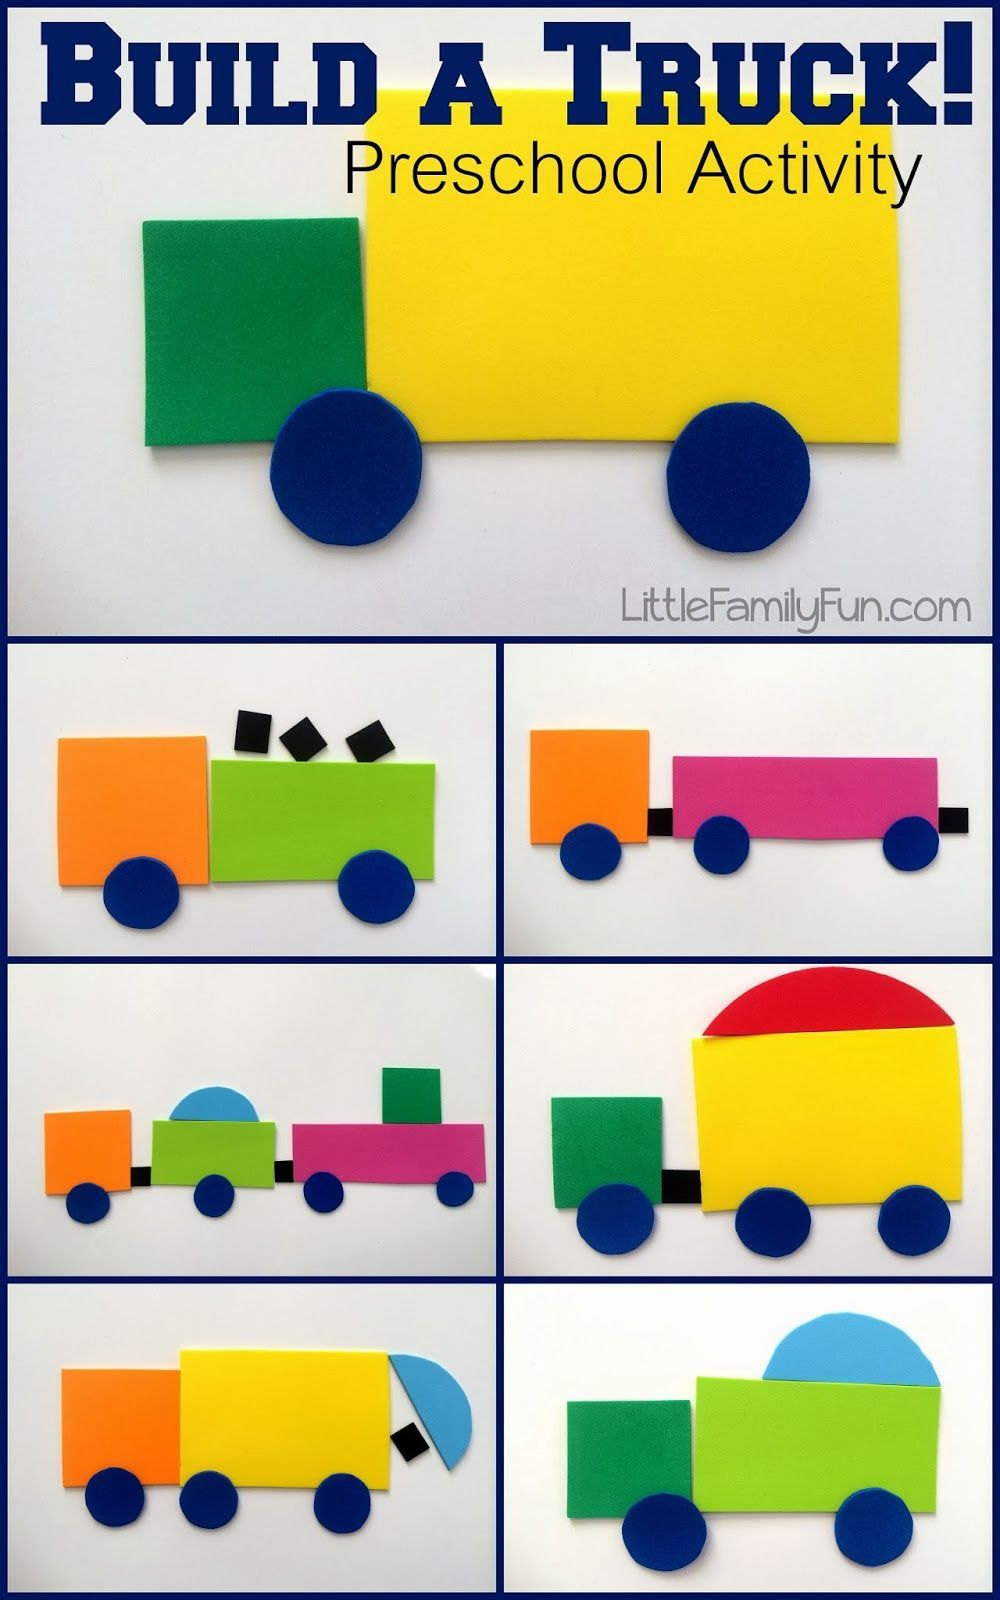 build a truck fun way to review shapes with preschoolers truck activity for kids kid. Black Bedroom Furniture Sets. Home Design Ideas